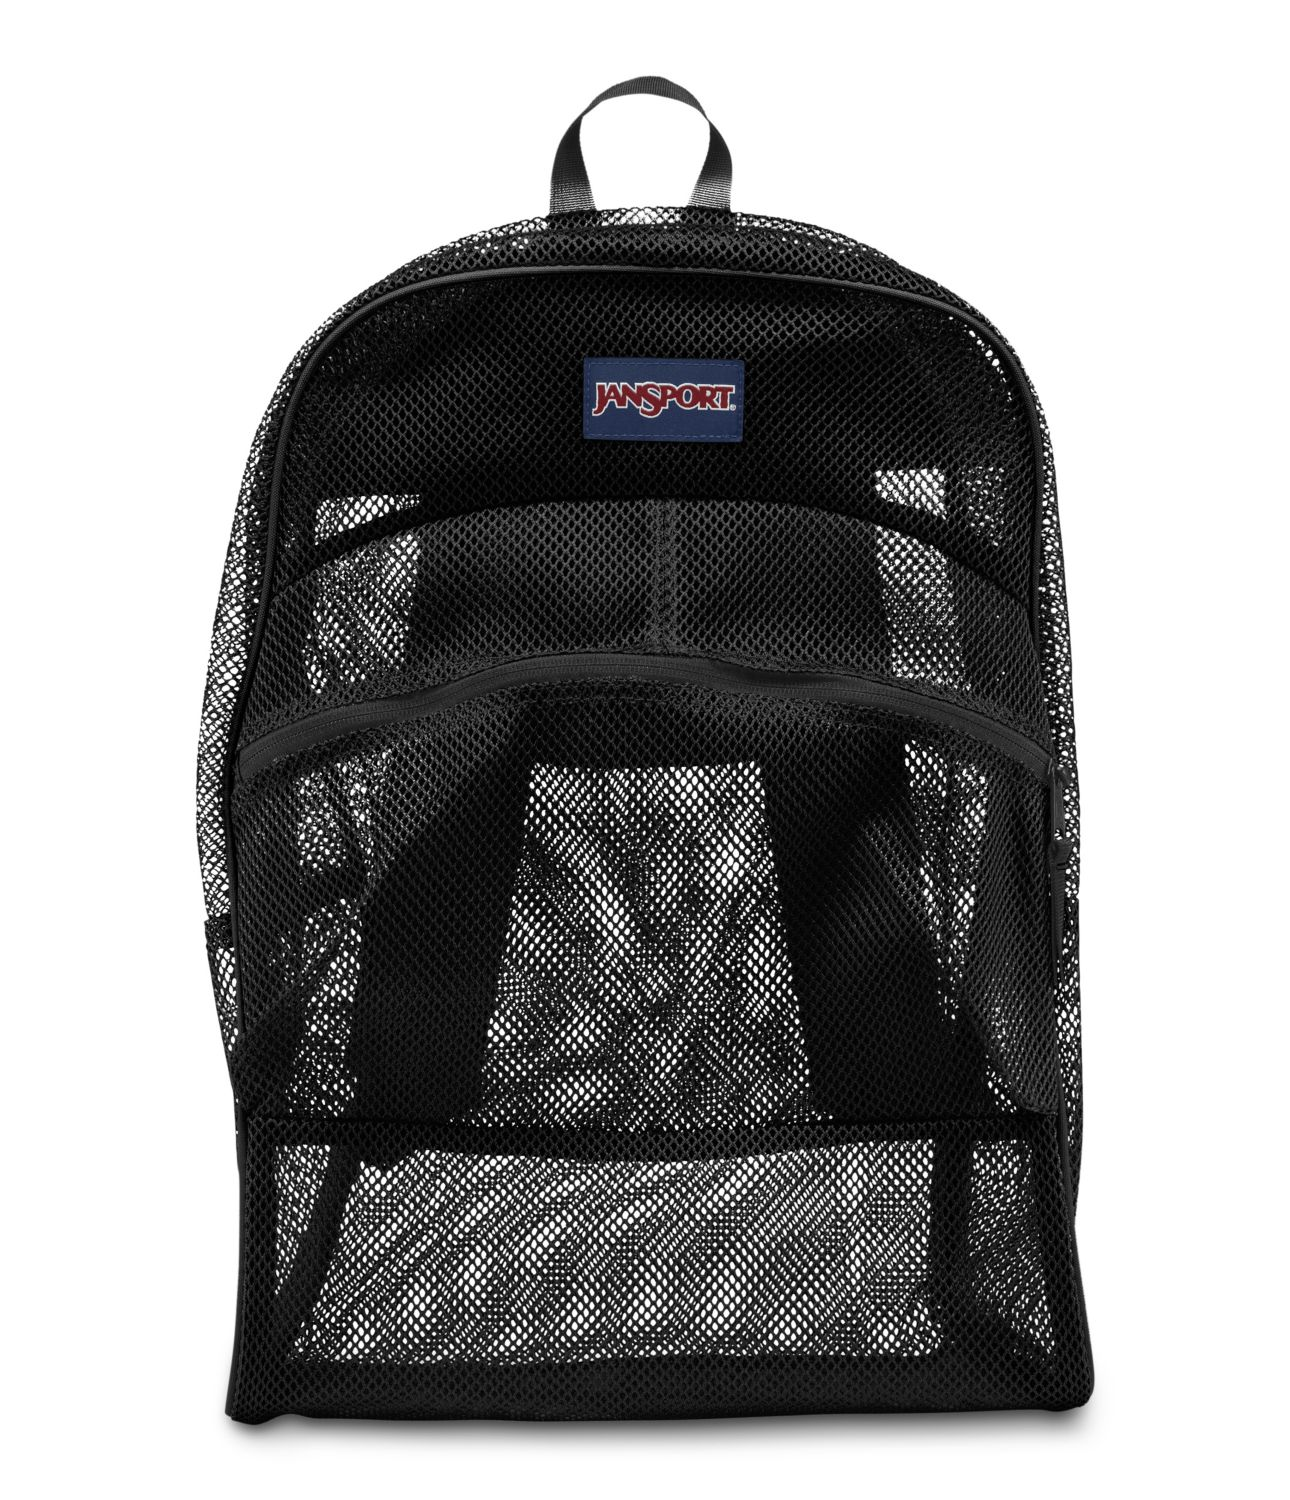 Mesh Jansport Backpacks GxEluPb3